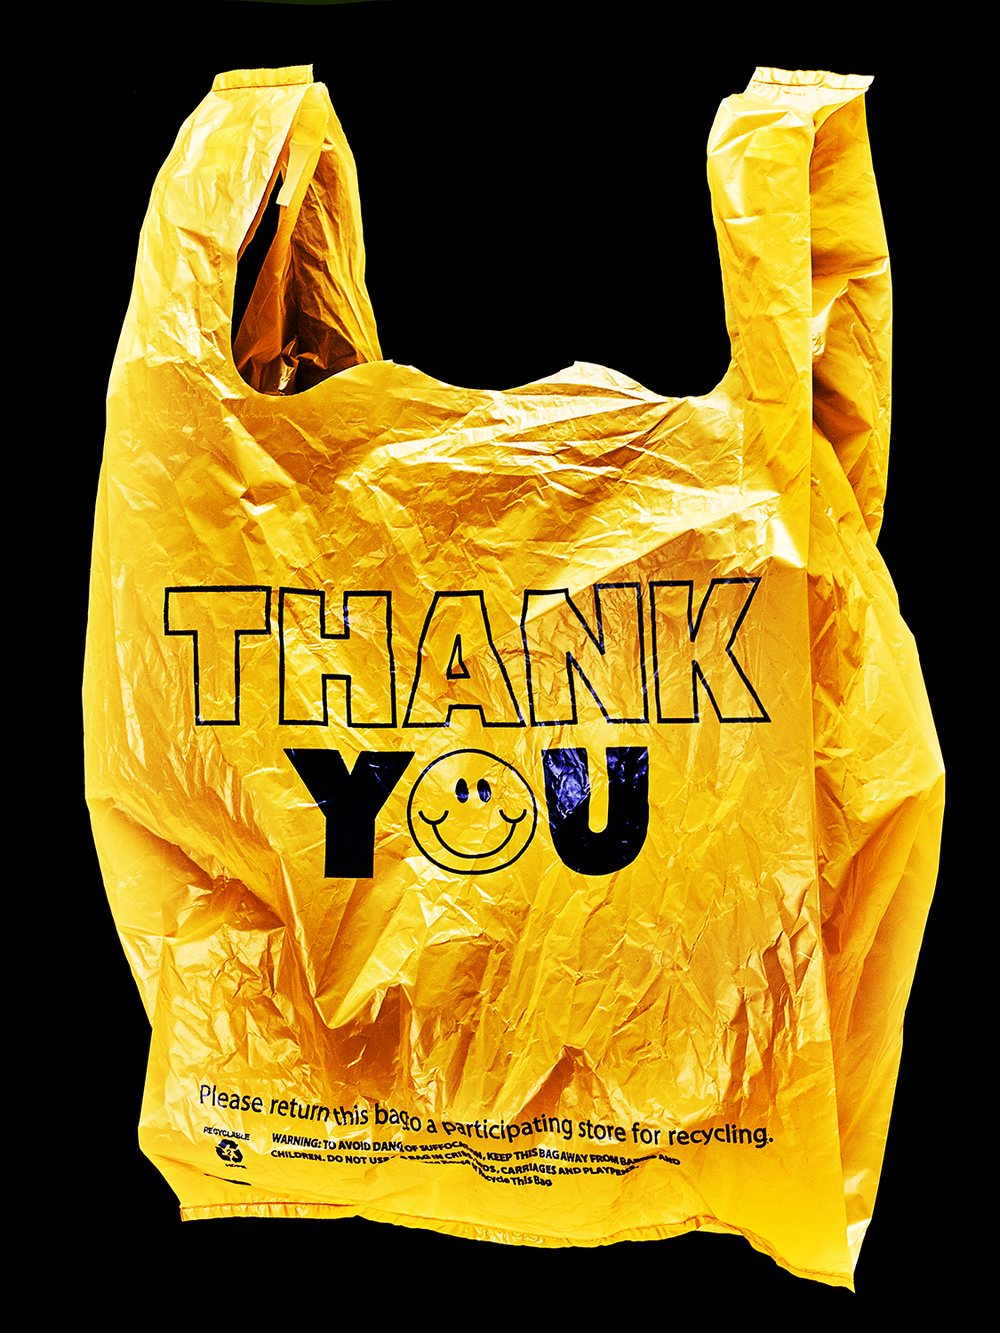 bobbydoherty: Plastic Bag for New York Magazine